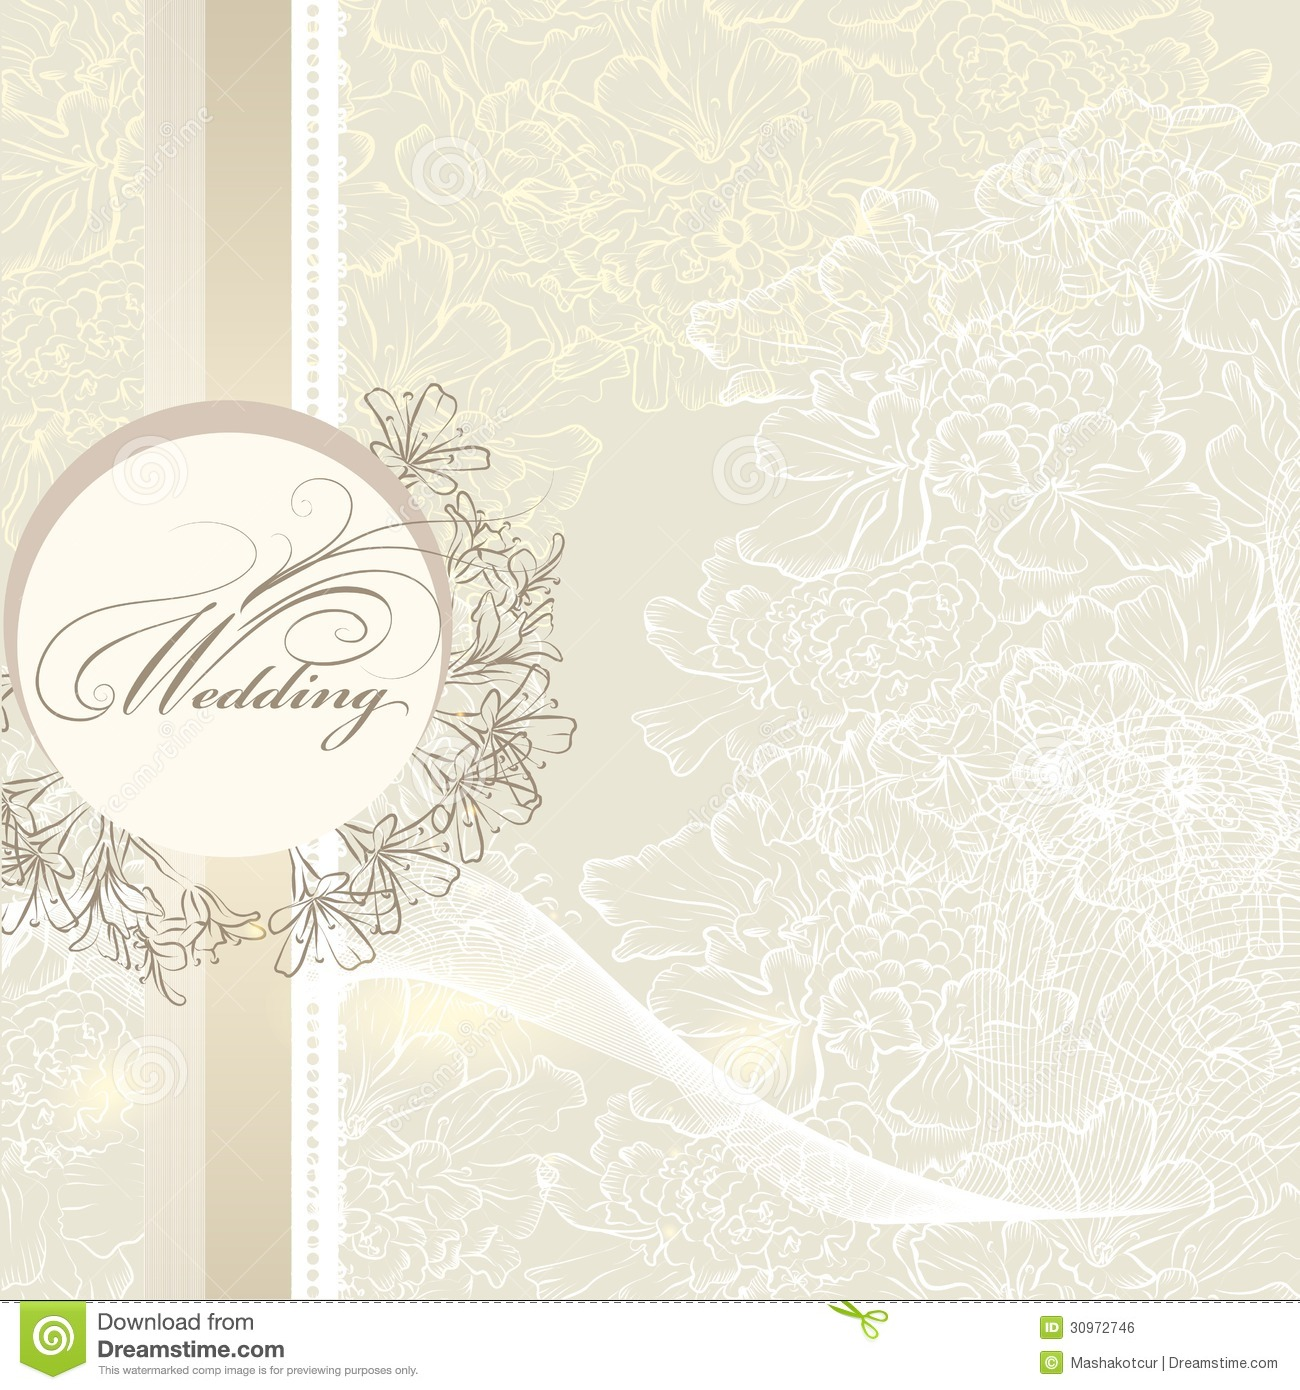 1300x1390 Wedding Card Designs Vector Free Download Luxury Elegant Wedding